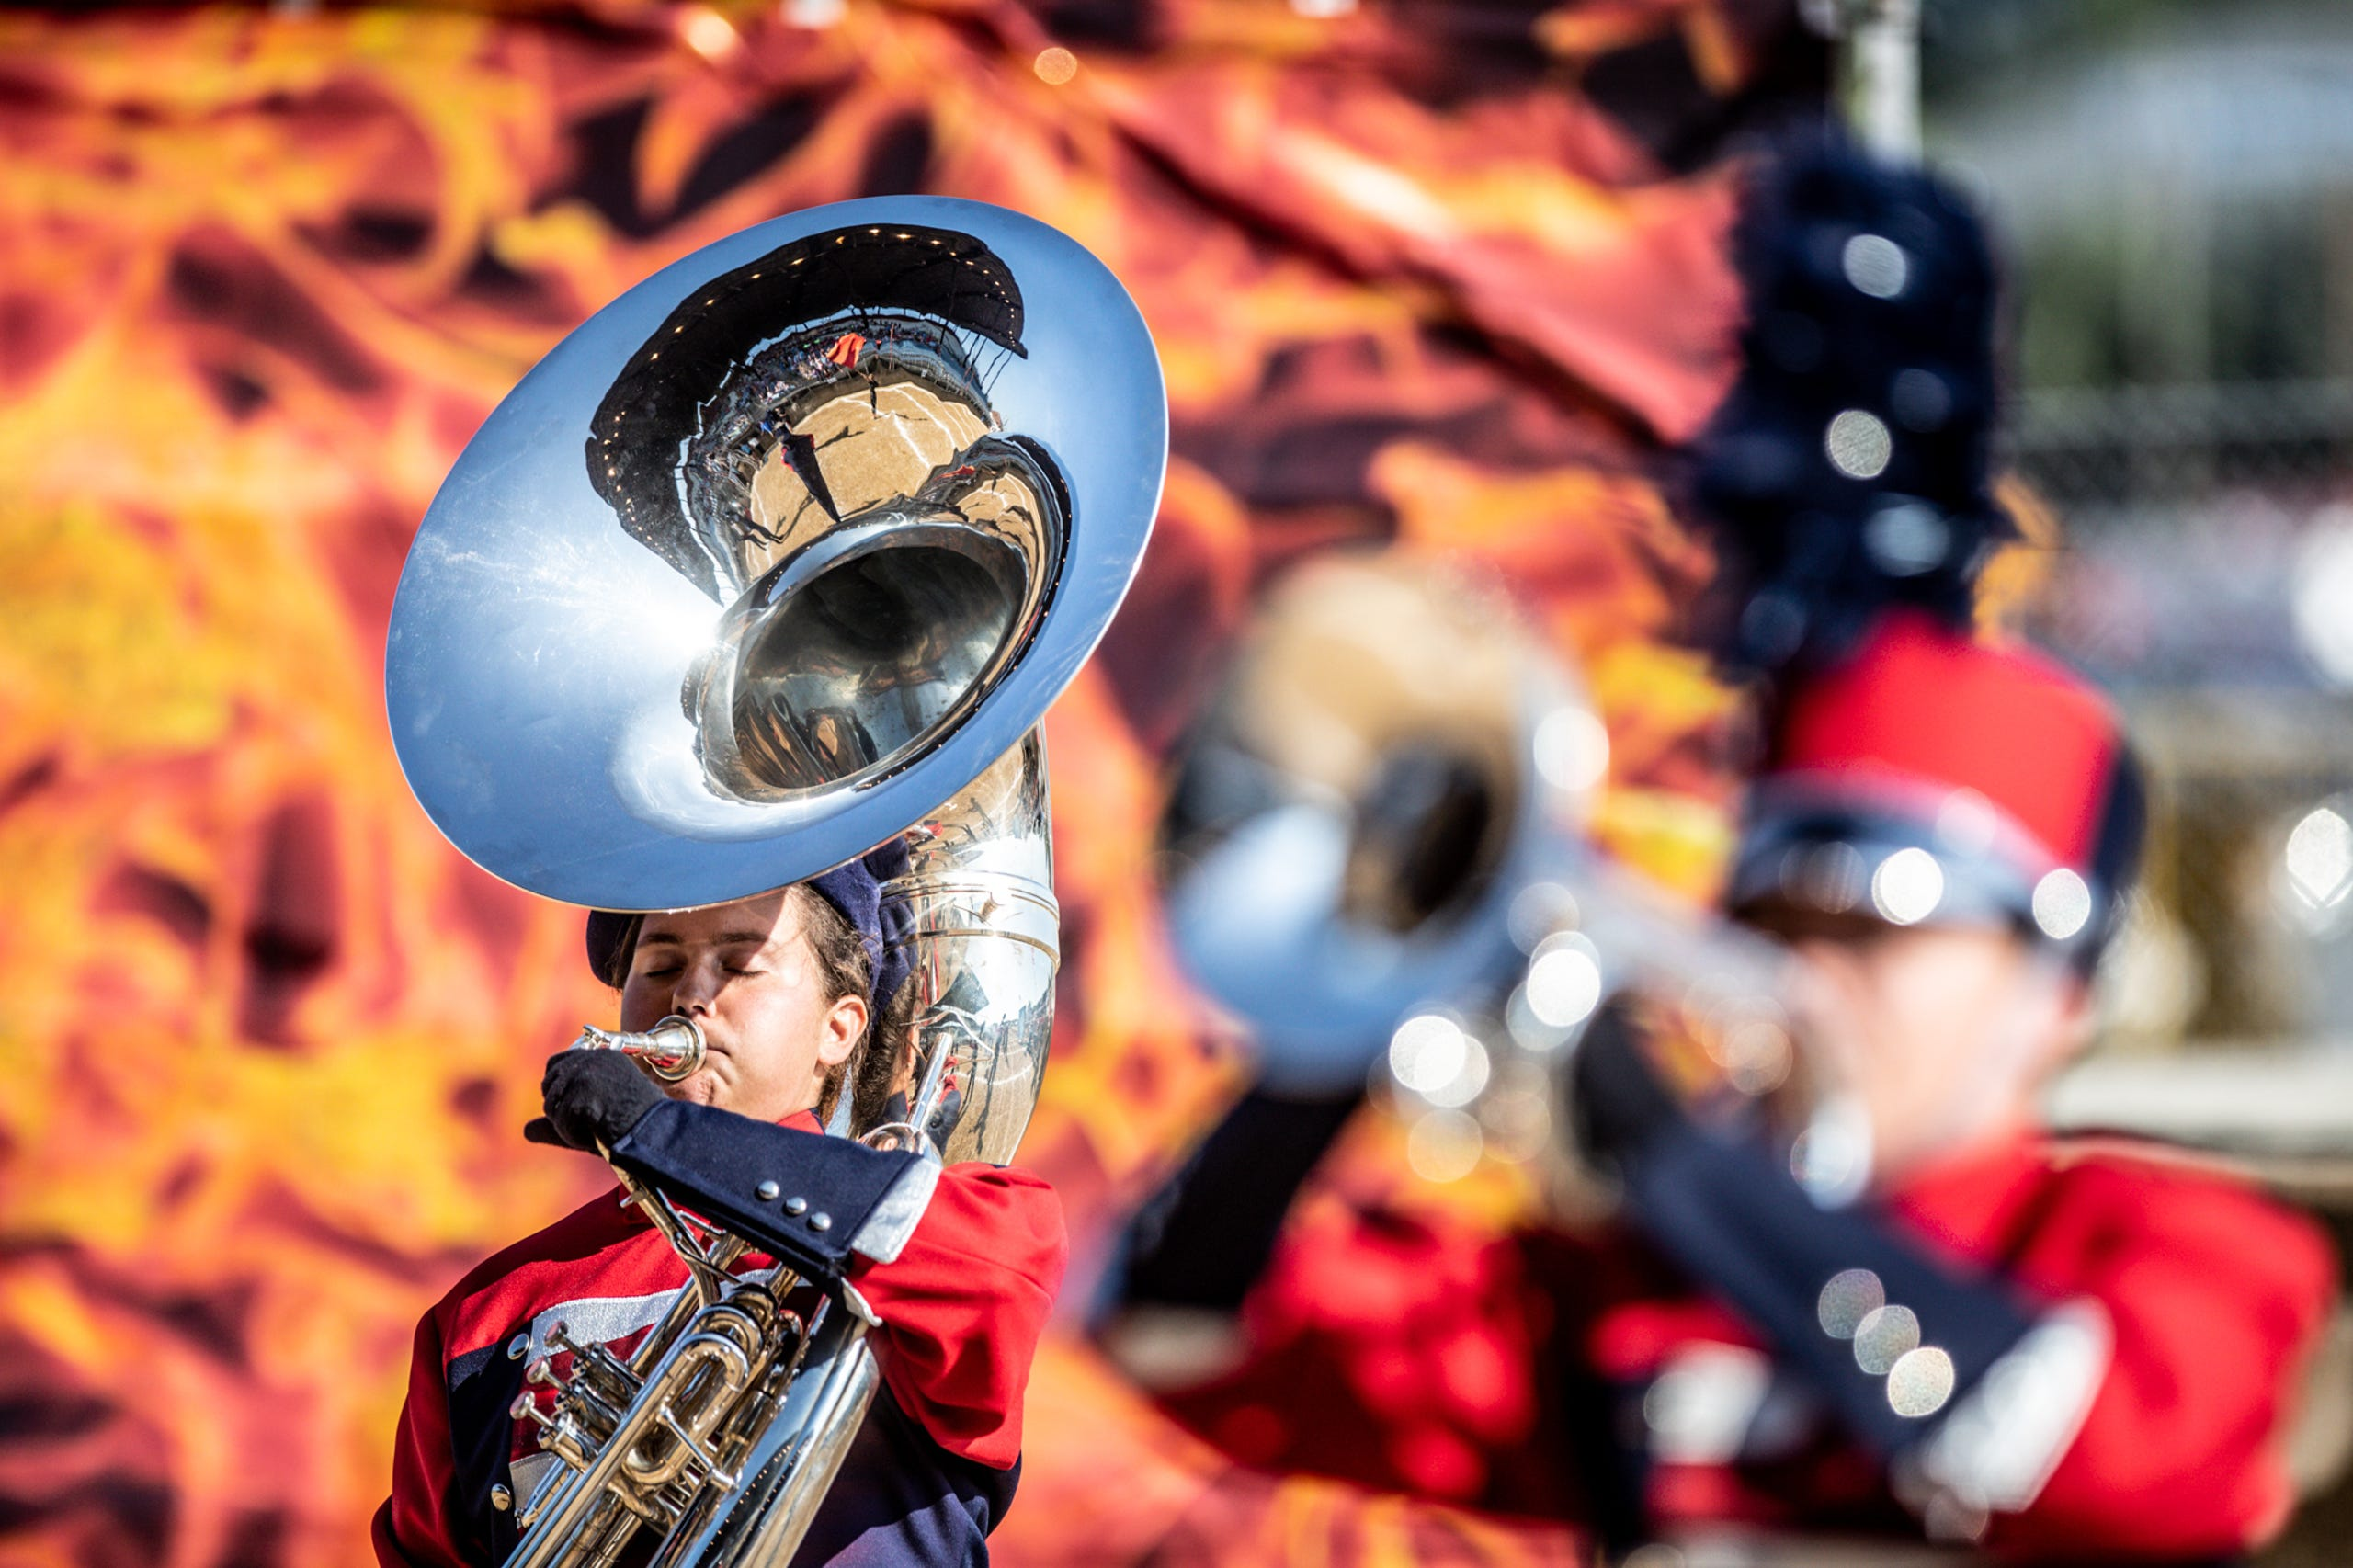 Indiana State Fair Band Day 2020.Indiana State Fair Band Day Music For All 2019